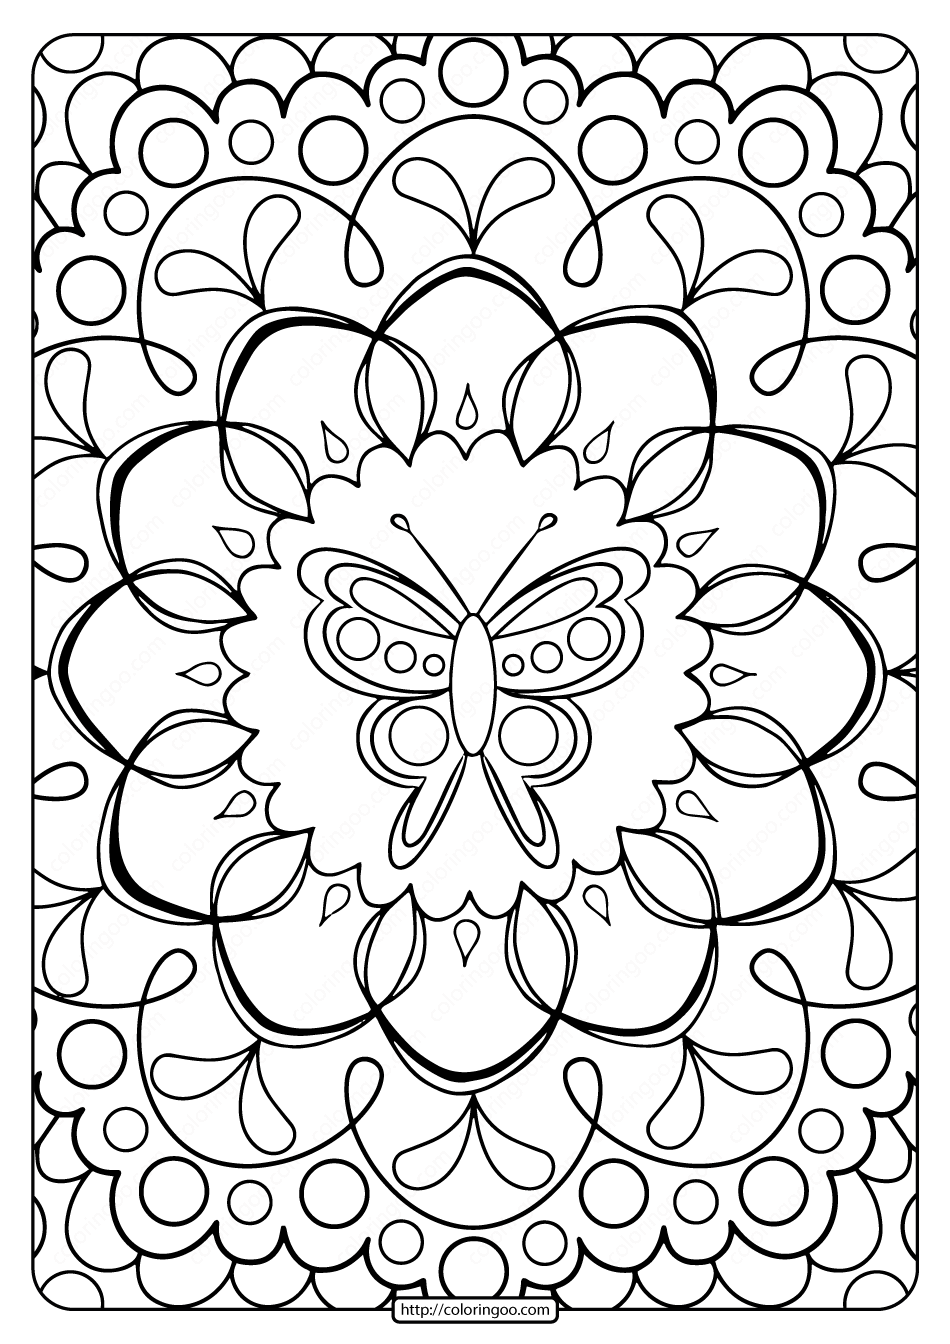 adults color childrens coloring books free coloring pages for teens and adults pack 101 coloring books adults childrens color coloring